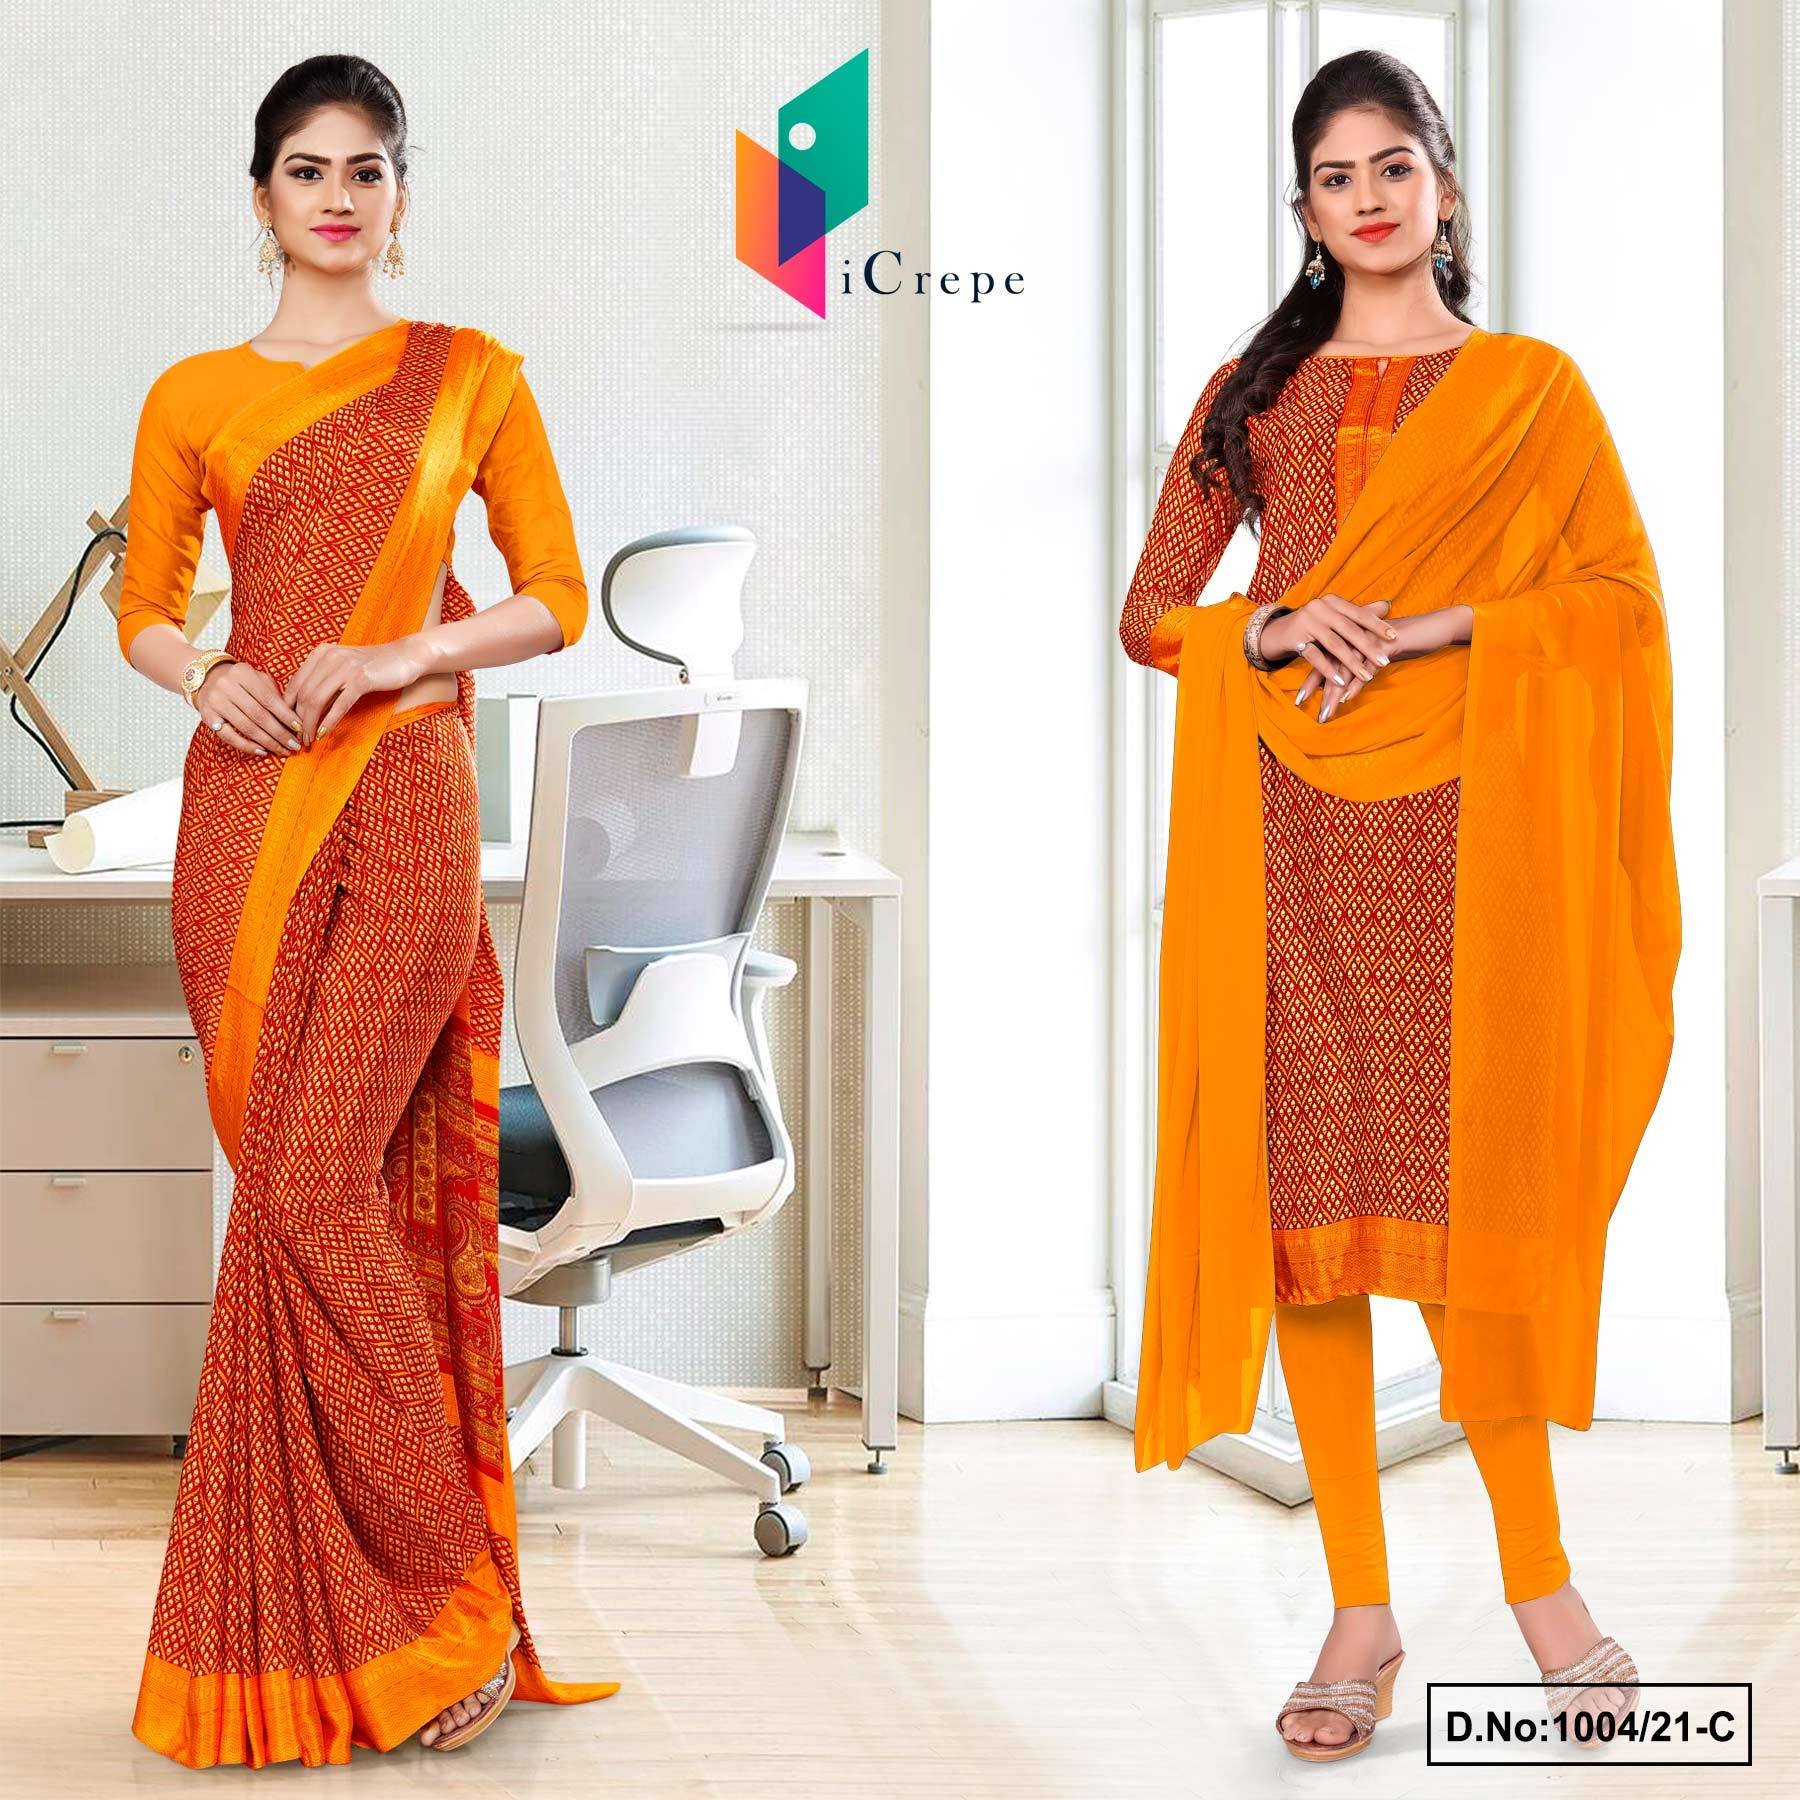 Orange Small Print Premium Italian Silk Crepe Saree Salwar Combo for Hospital Uniform Sarees